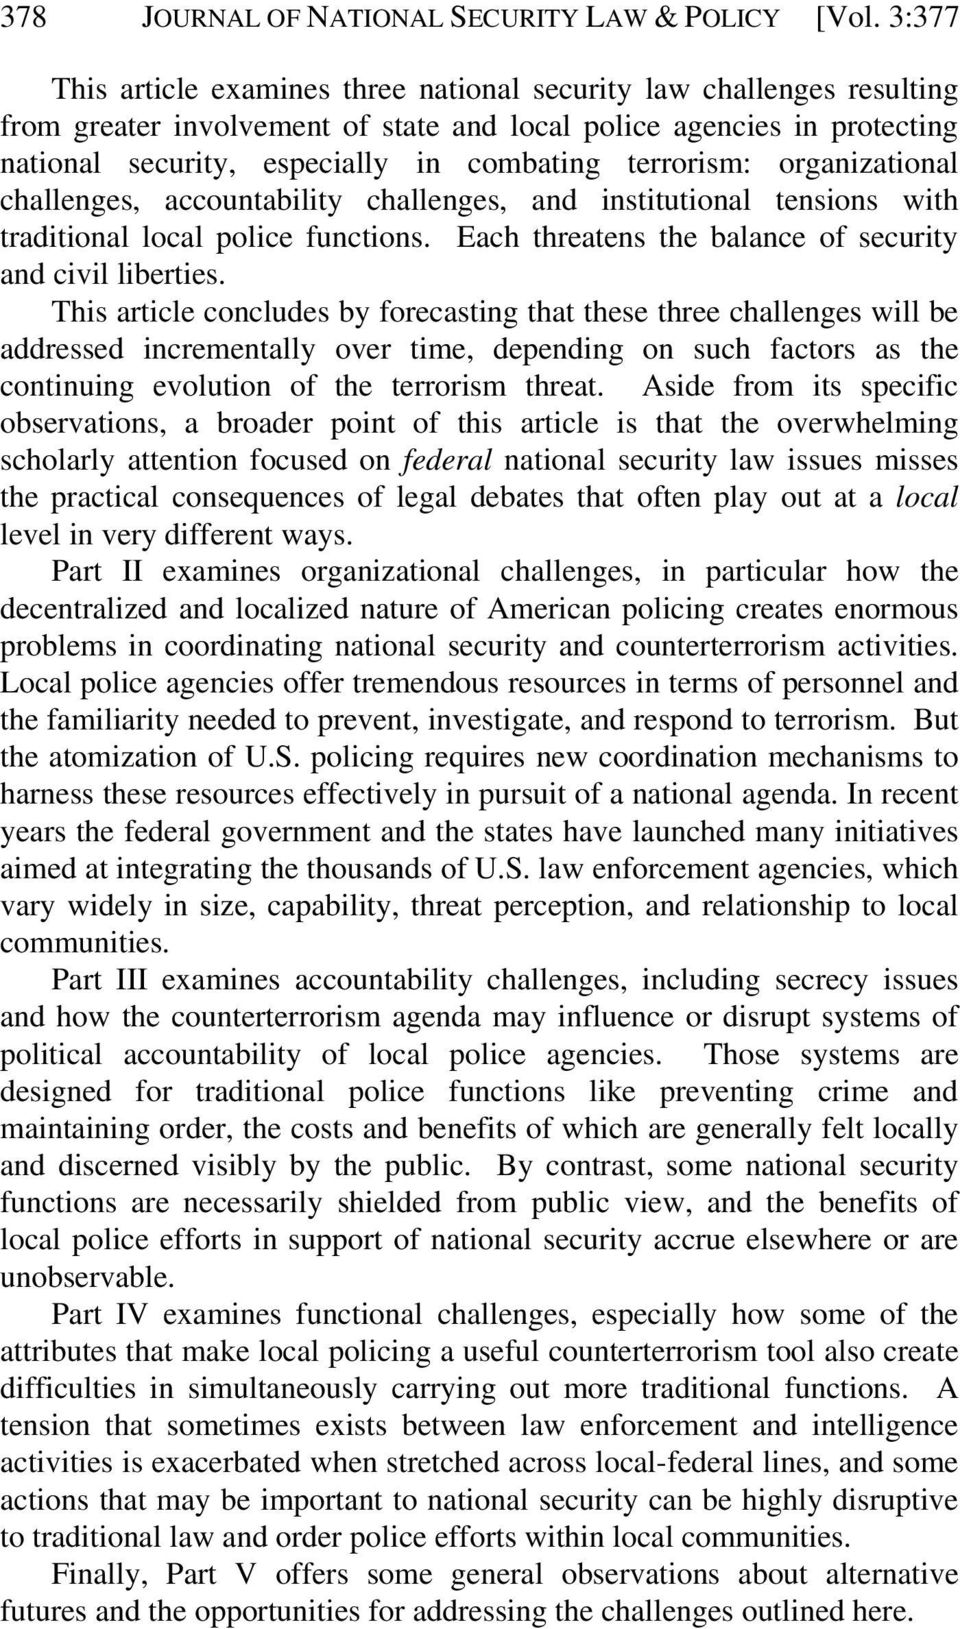 terrorism: organizational challenges, accountability challenges, and institutional tensions with traditional local police functions. Each threatens the balance of security and civil liberties.